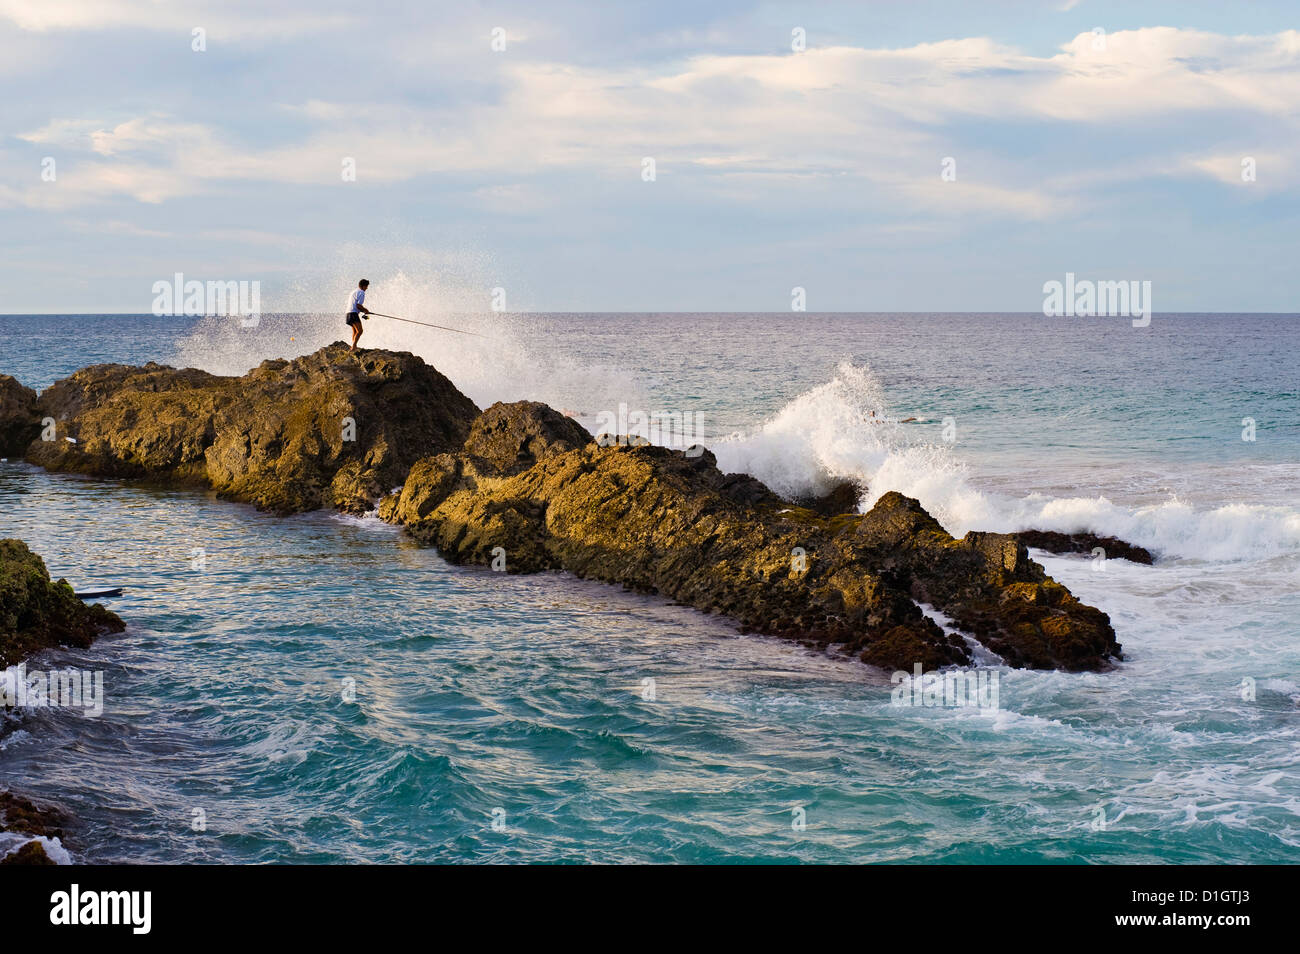 Pescador siendo golpeado por una ola, mientras rock pesca en Snapper Rocks, Tweed Heads, Gold Coast, Queensland, Imagen De Stock